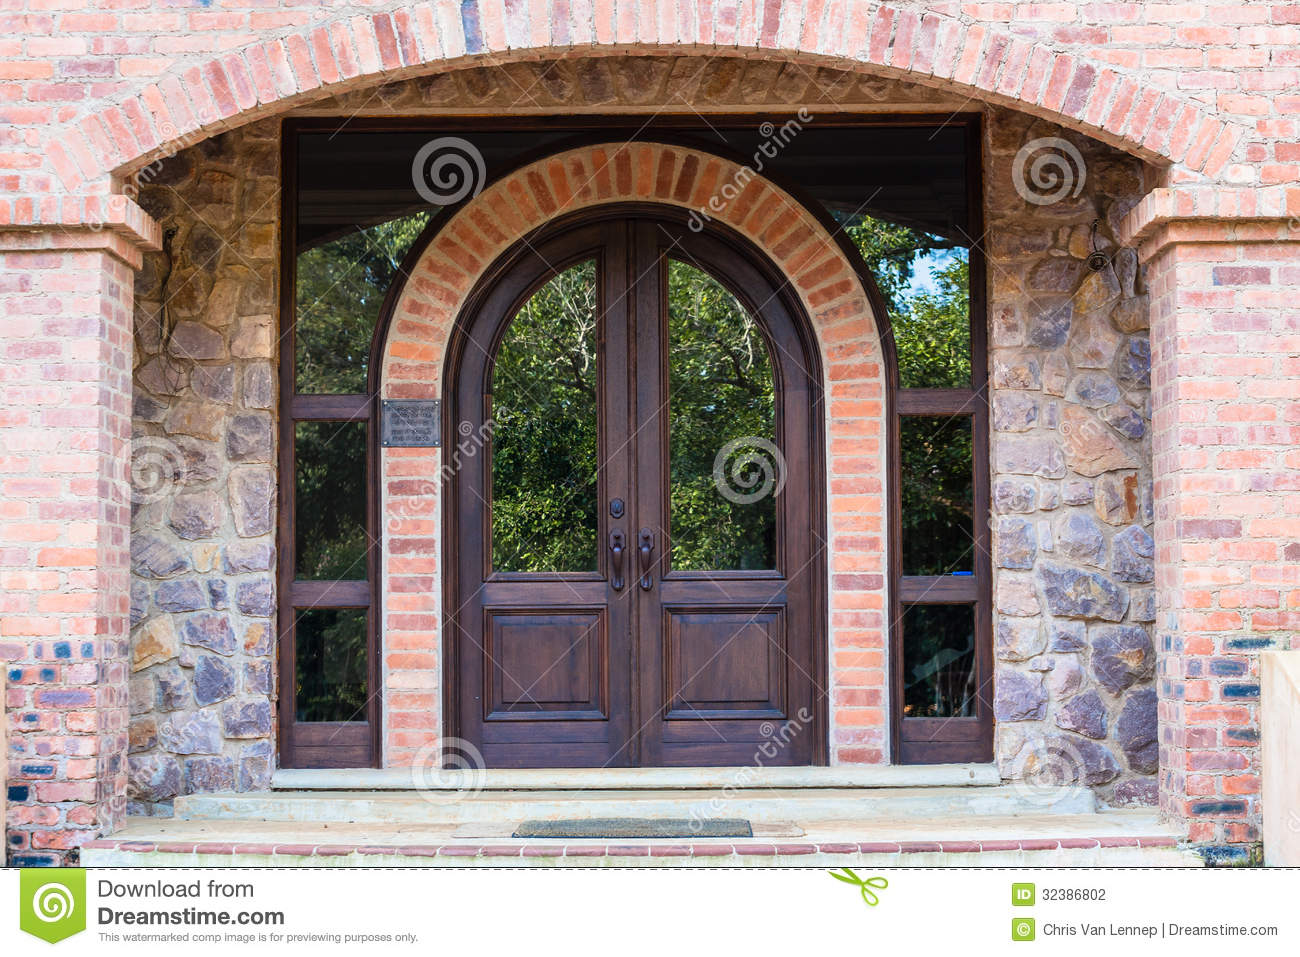 Palladium Stone Around Window : Door arch cathedral angle custom arched